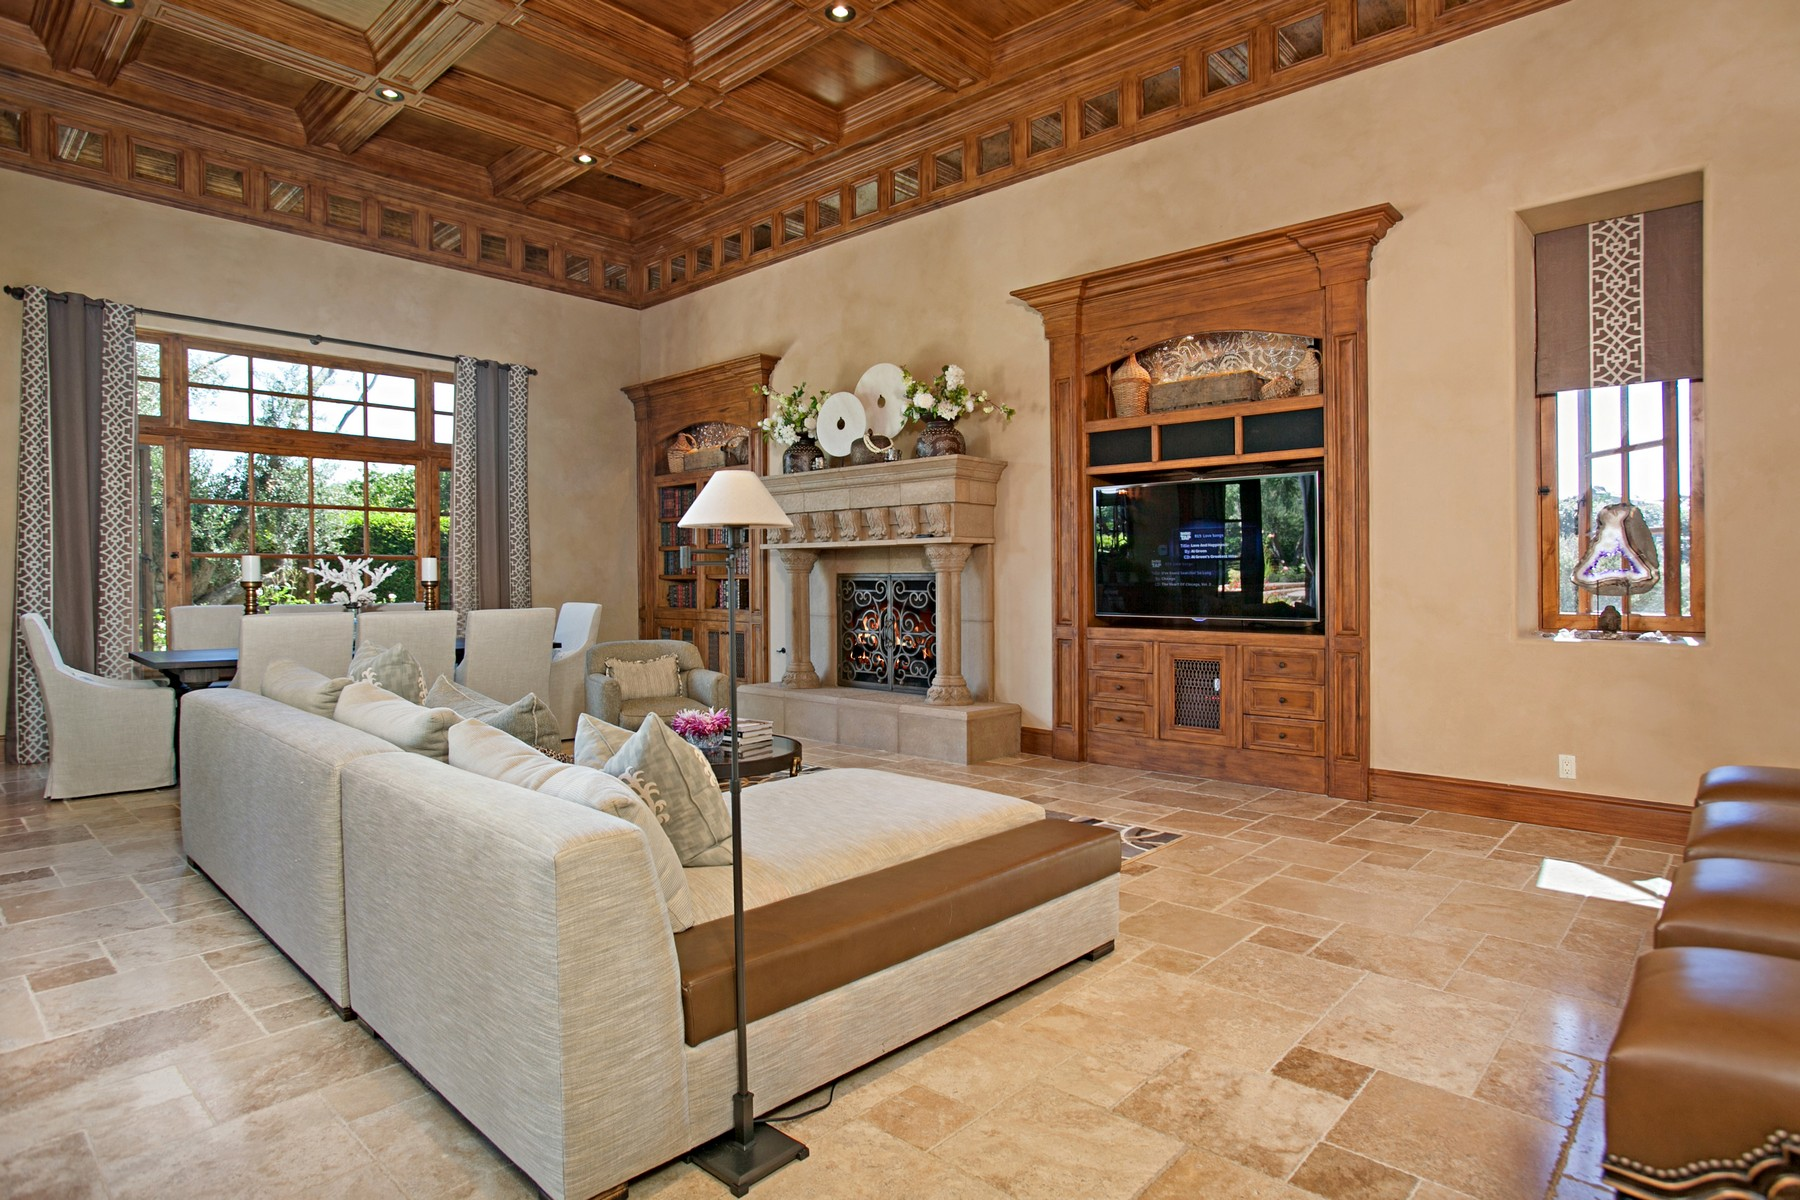 Additional photo for property listing at 6285 Strada Fragante  Rancho Santa Fe, California 92091 Estados Unidos